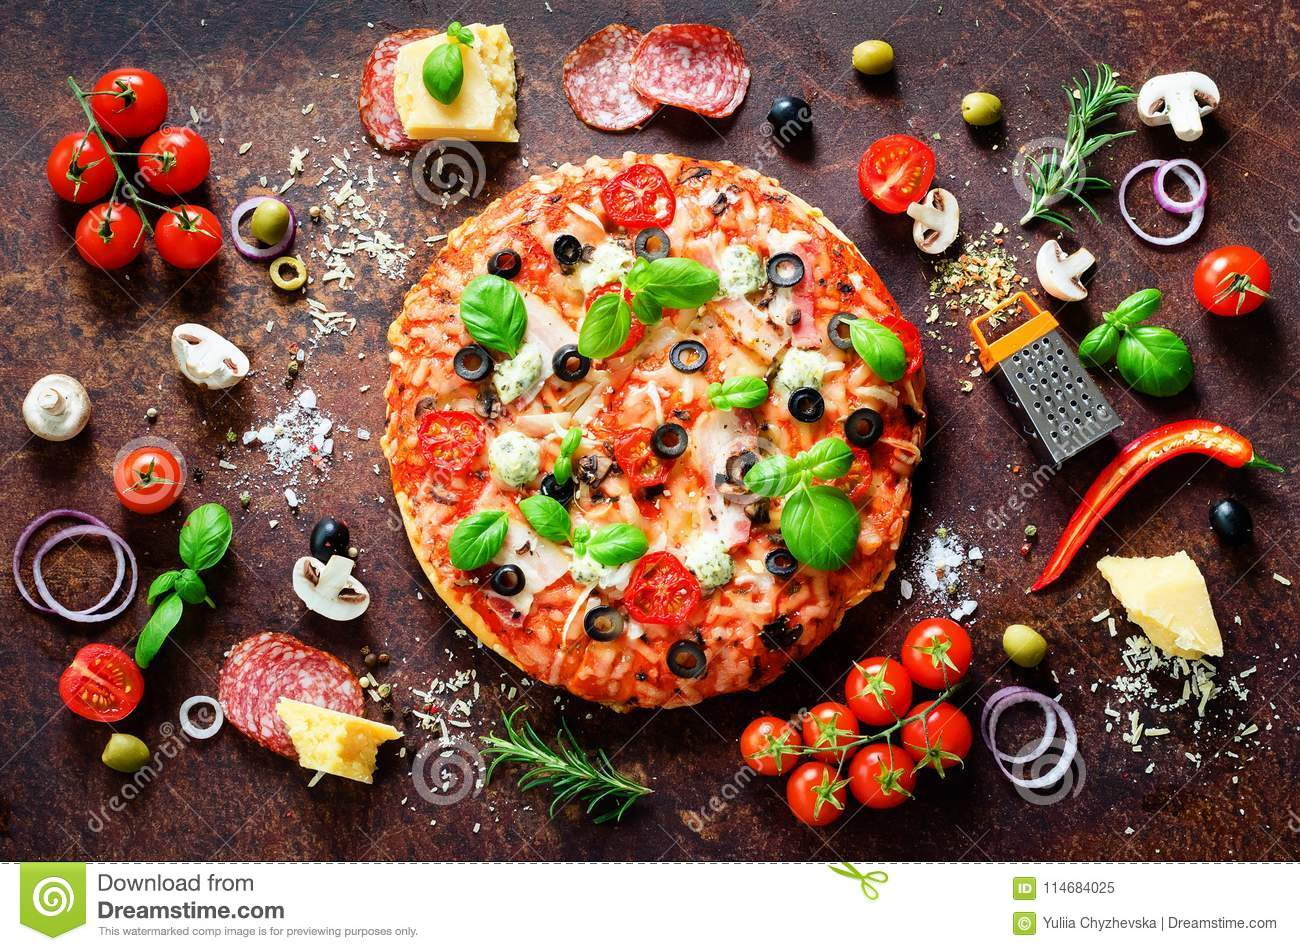 Food ingredients and spices for cooking delicious italian pizza. Mushrooms, tomatoes, cheese, onion, oil, pepper, salt